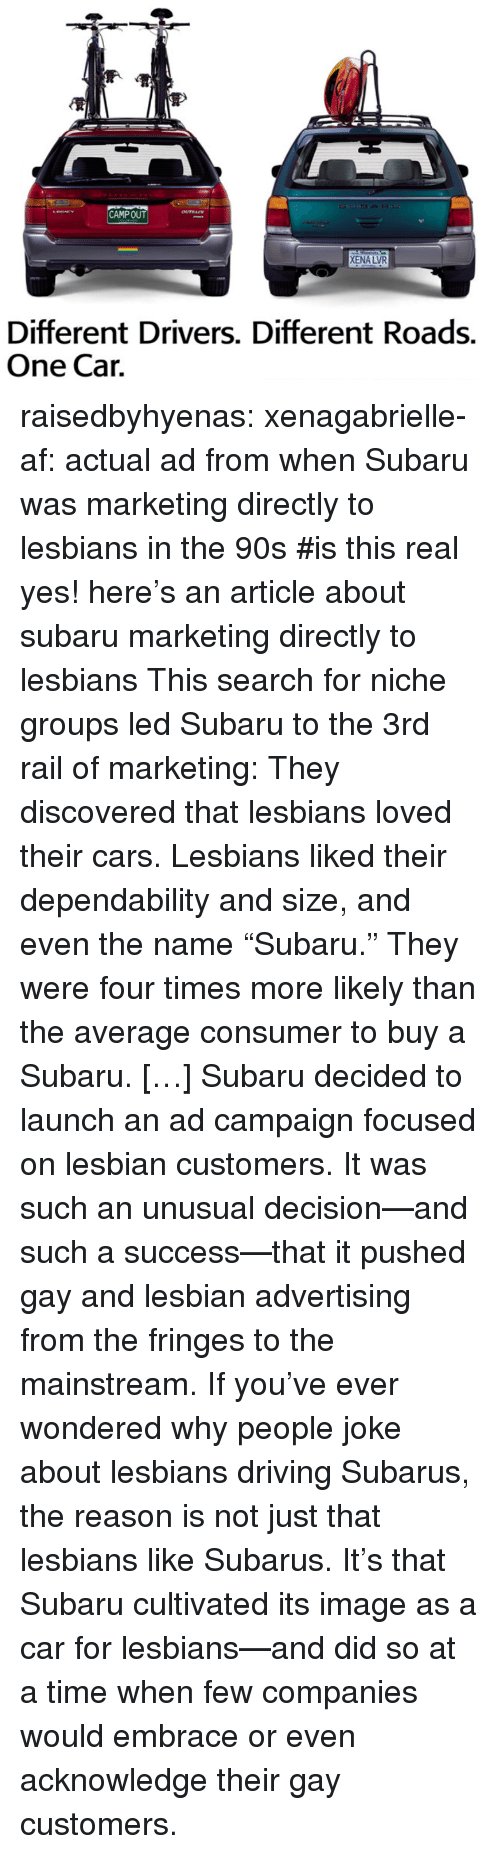 """niche: CAMPOUT  XENA LVR  Different Drivers. Different Roads.  One Cair. raisedbyhyenas:  xenagabrielle-af: actual ad from when Subaru was marketing directly to lesbians in the 90s   #is this real     yes! here's an article about subaru marketing directly to lesbians    This search for niche groups led Subaru to the 3rd rail of marketing: They discovered that lesbians loved their cars. Lesbians liked their dependability and size, and even the name """"Subaru."""" They were four times more likely than the average consumer to buy a Subaru. […]Subaru decided to launch an ad campaign focused on lesbian customers. It was such an unusual decision—and such a success—that it pushed gay and lesbian advertising from the fringes to the mainstream. If you've ever wondered why people joke about lesbians driving Subarus, the reason is not just that lesbians like Subarus. It's that Subaru cultivated its image as a car for lesbians—and did so at a time when few companies would embrace or even acknowledge their gay customers."""